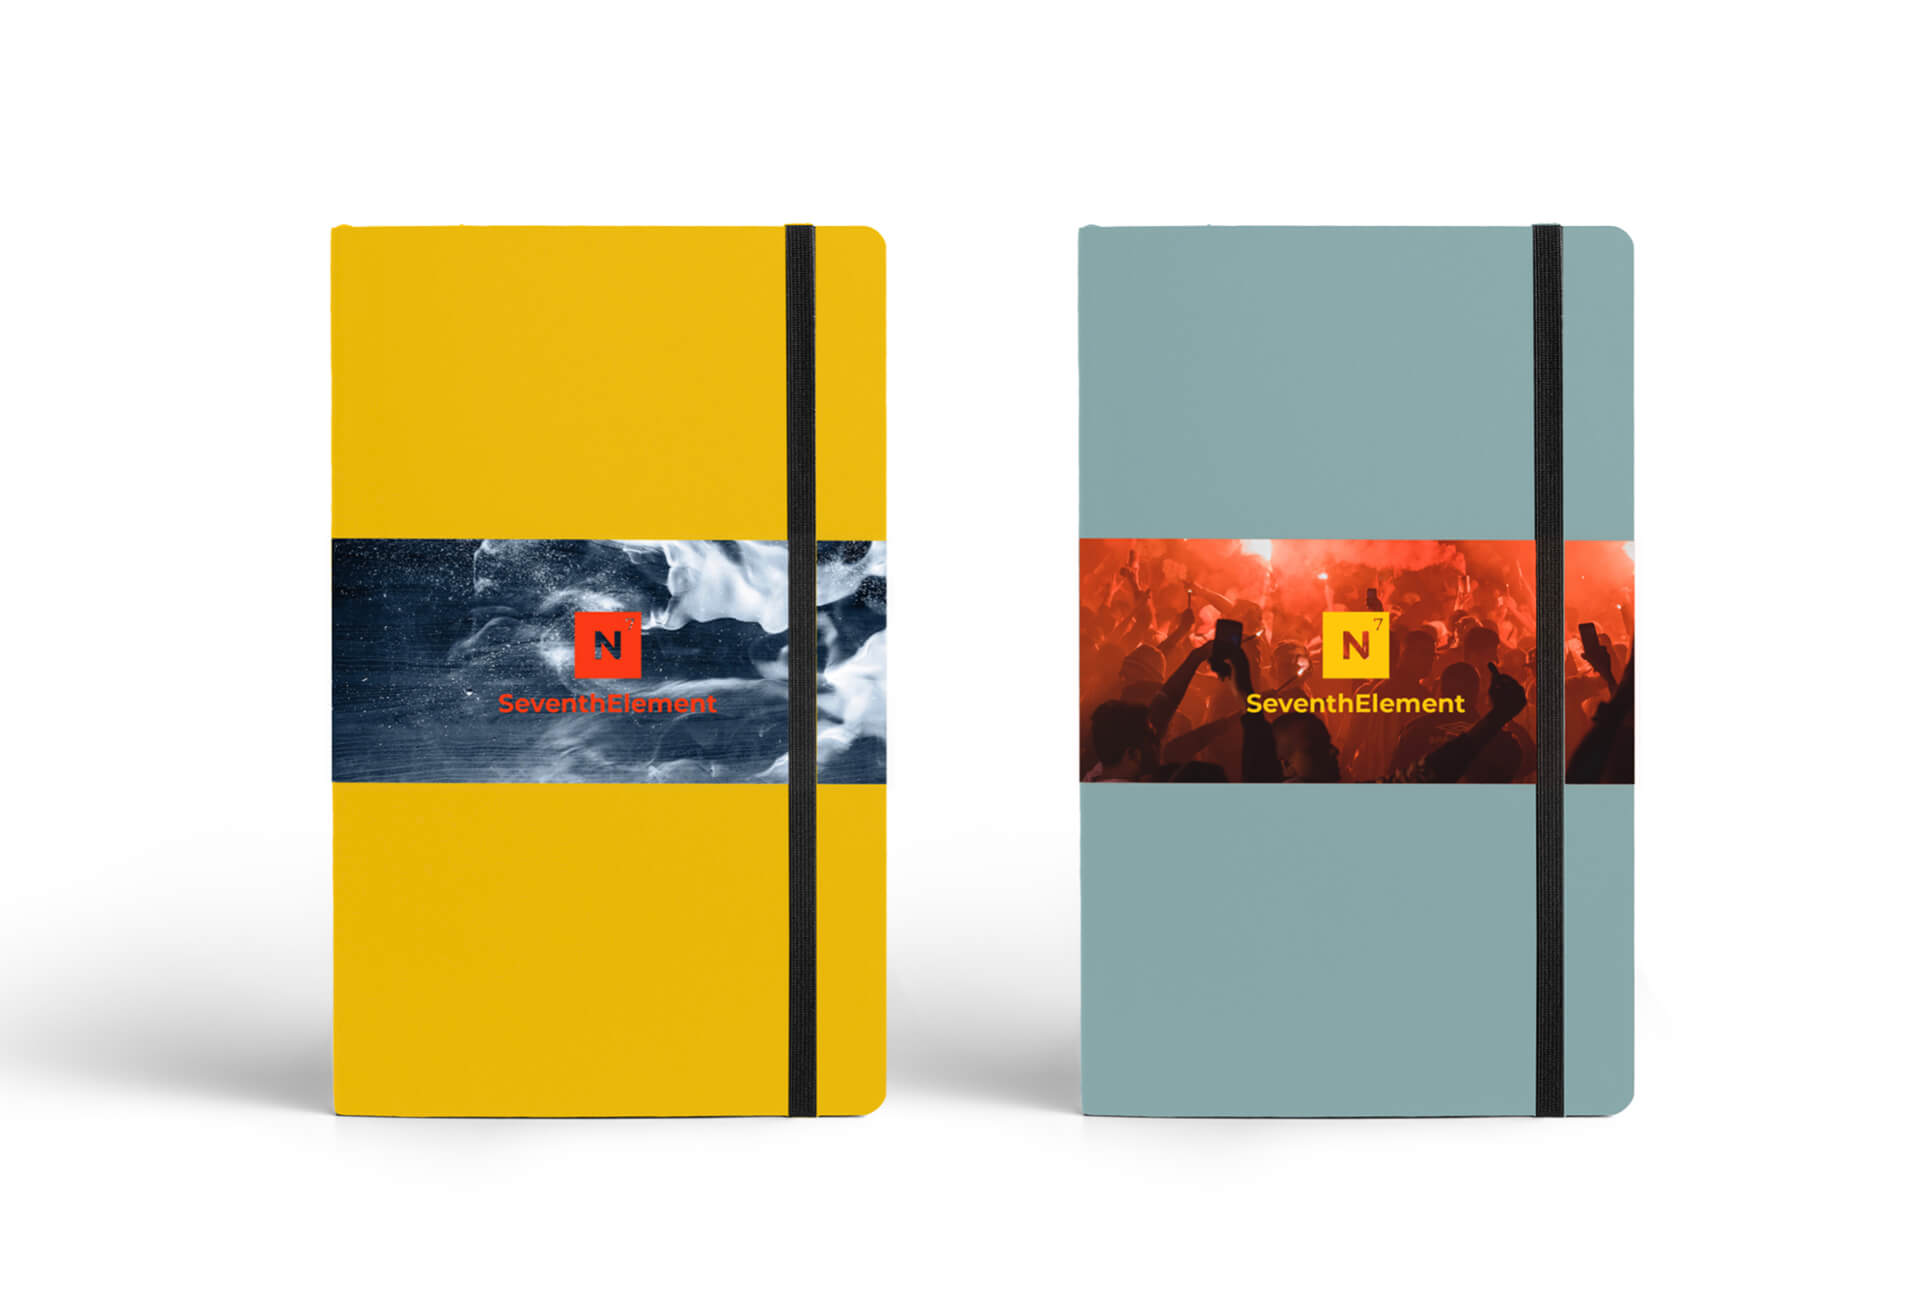 Powerful imagery used on our branded notebooks